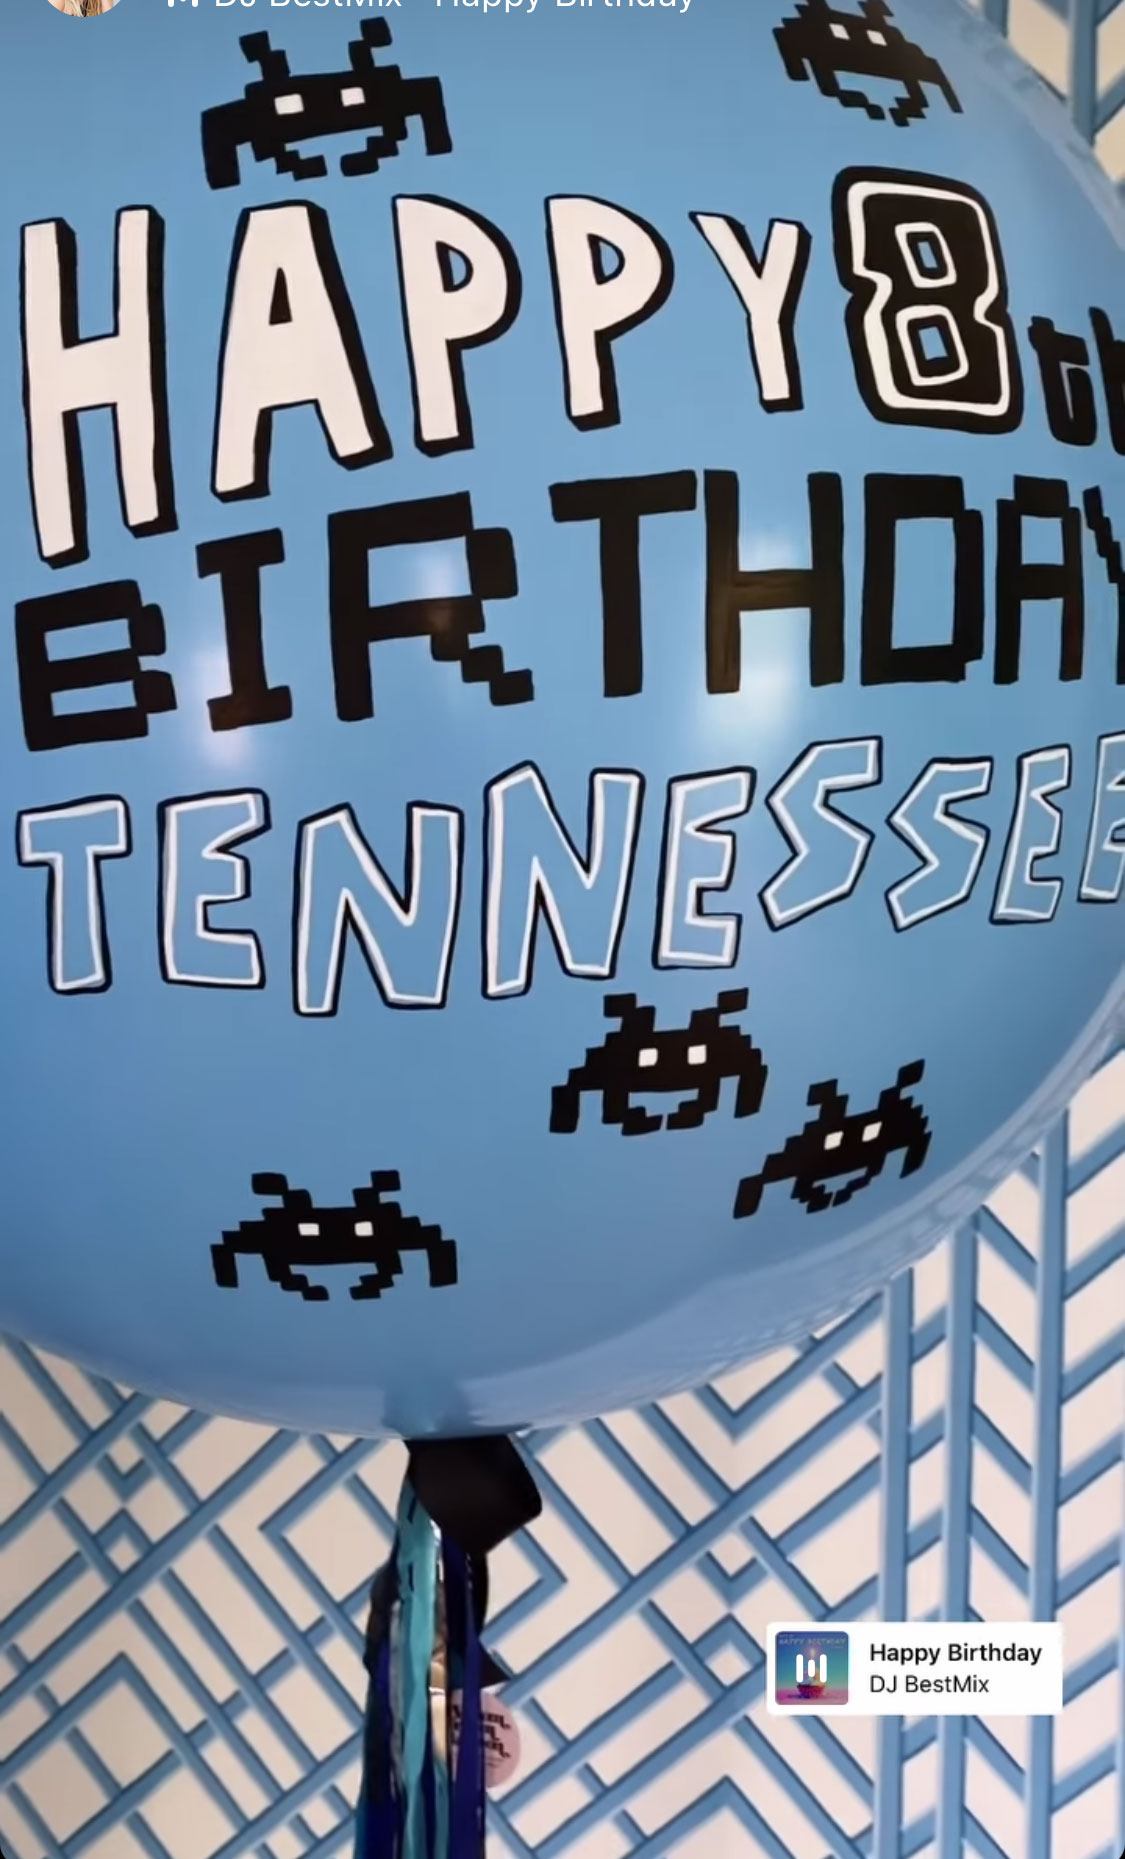 Reese wishes son, Tennessee happy birthday